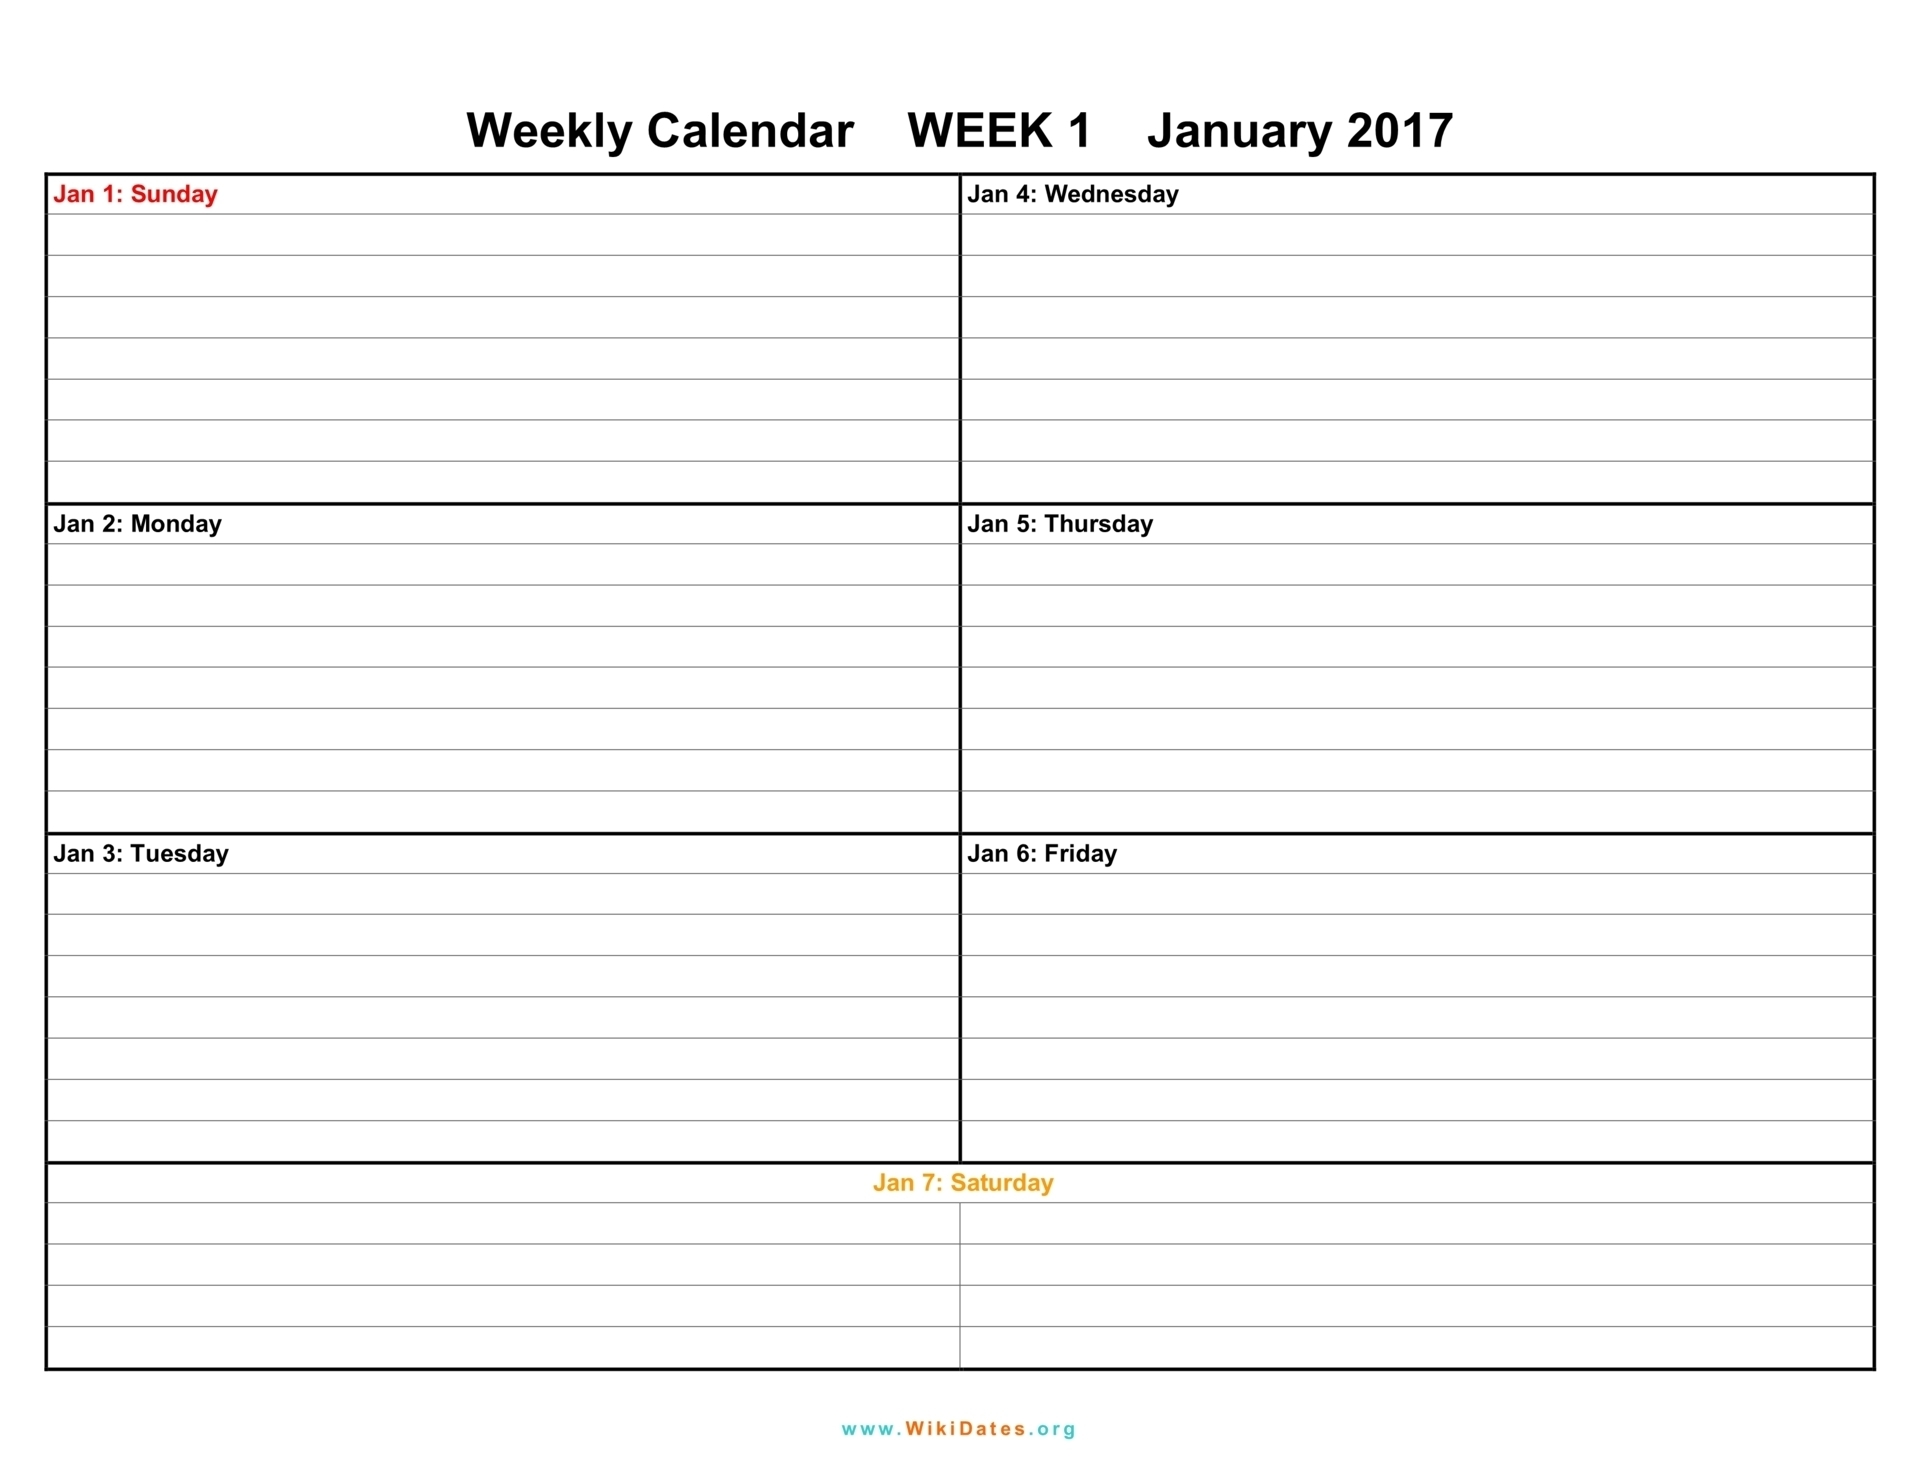 Free Printable Calendar With Lines To Write On Calendars Blank inside Week Printable Calendar With Lines